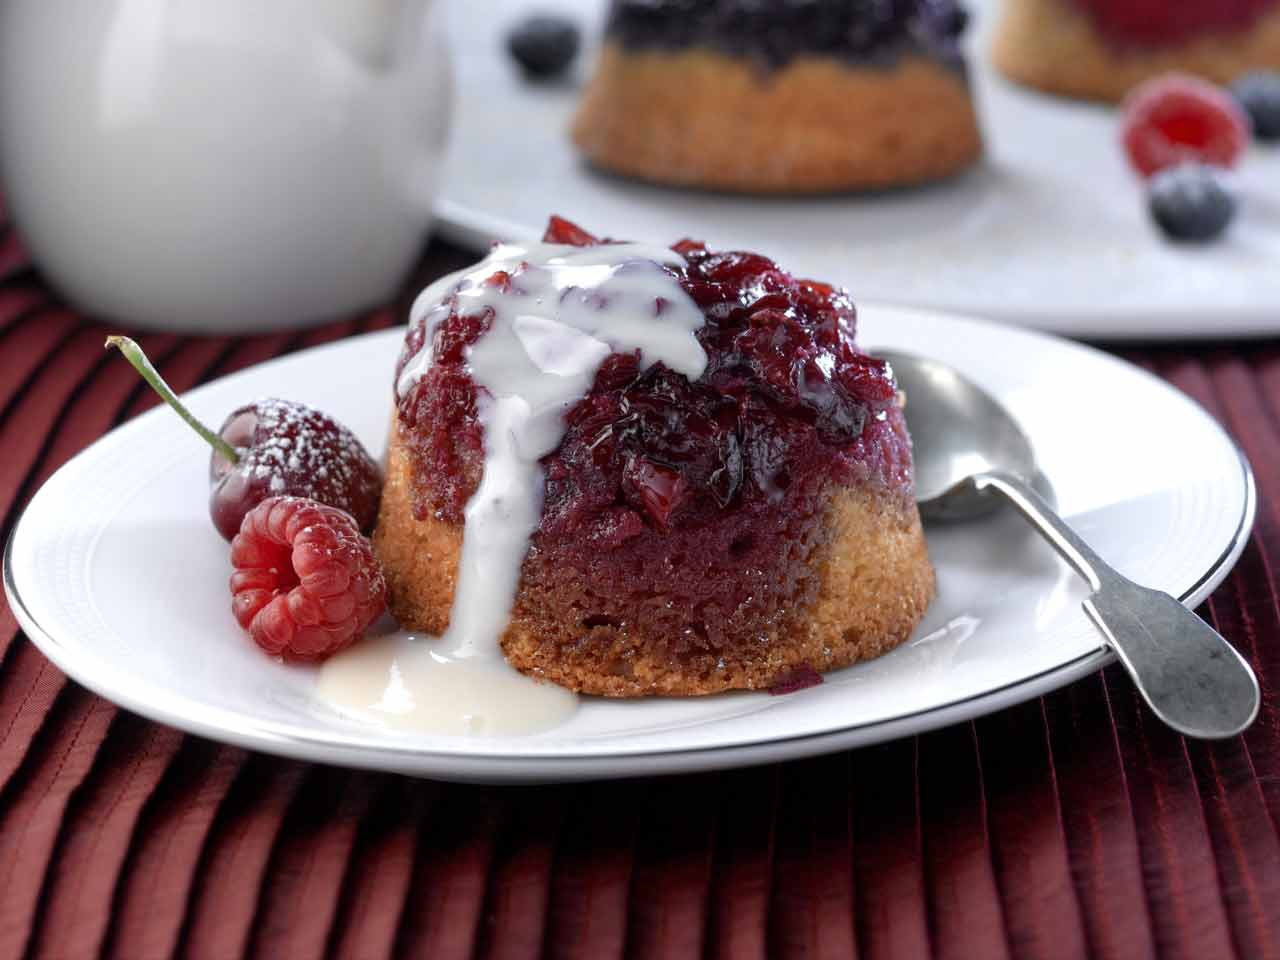 Jewelled sponge pudding with brandy sauce